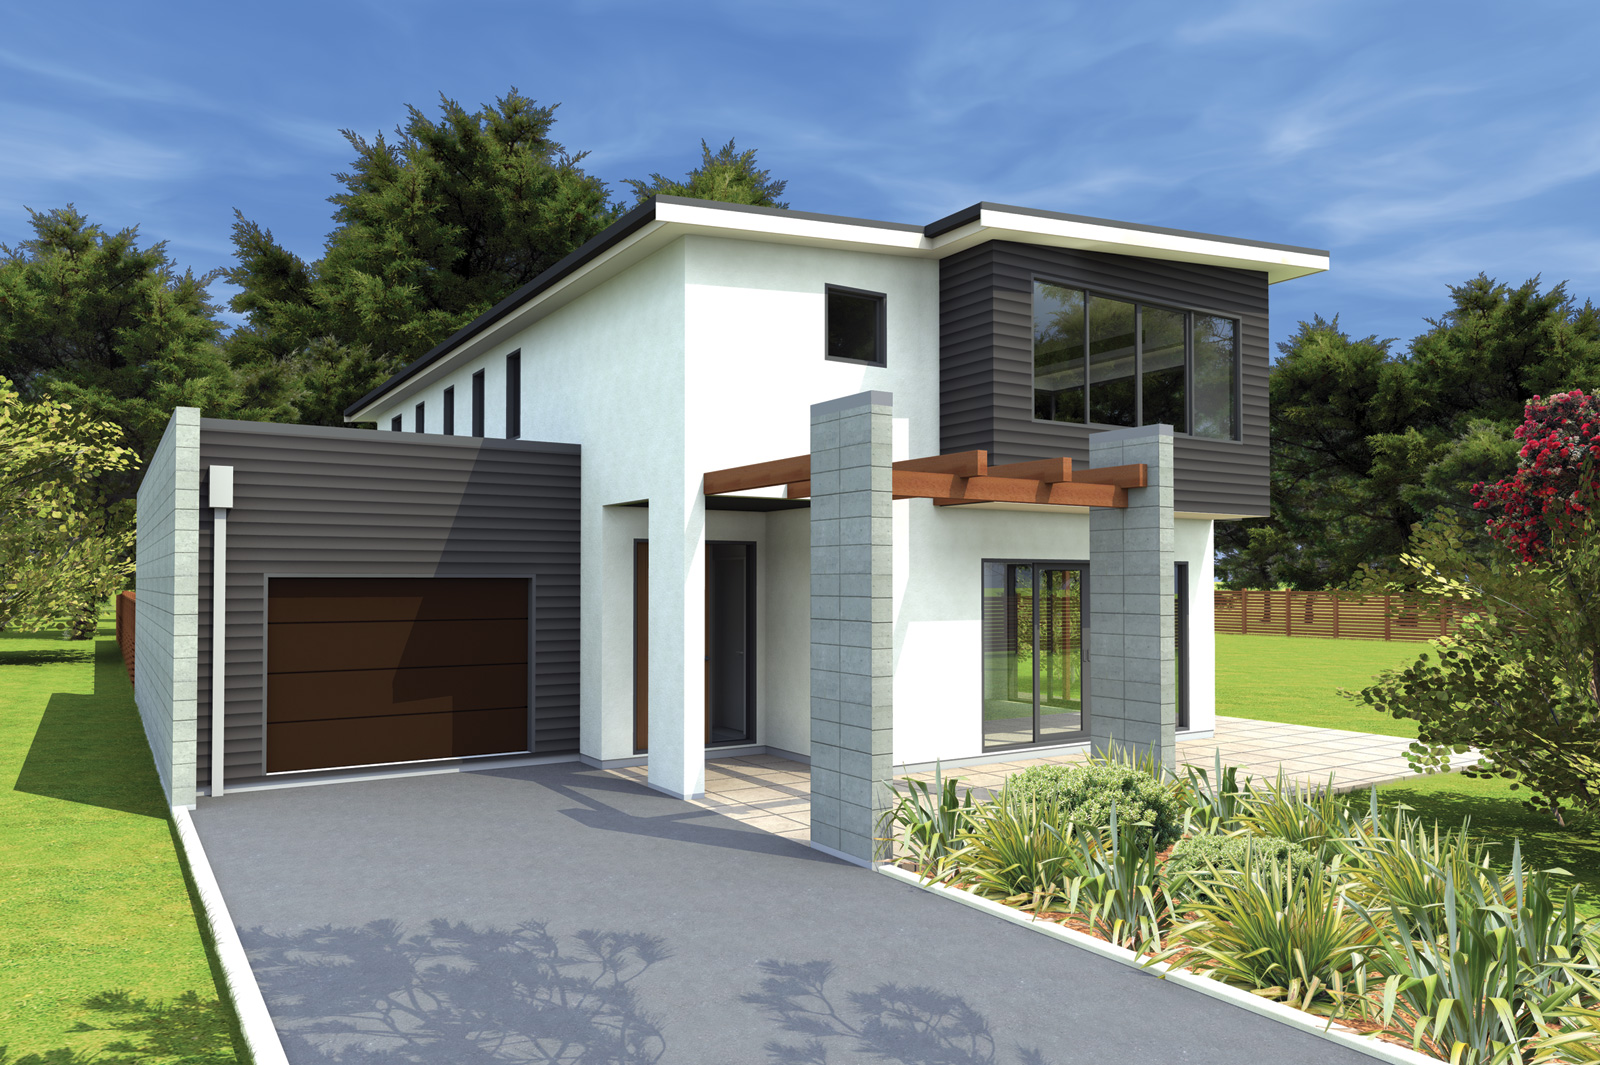 New home designs latest new modern homes designs new Latest simple house design